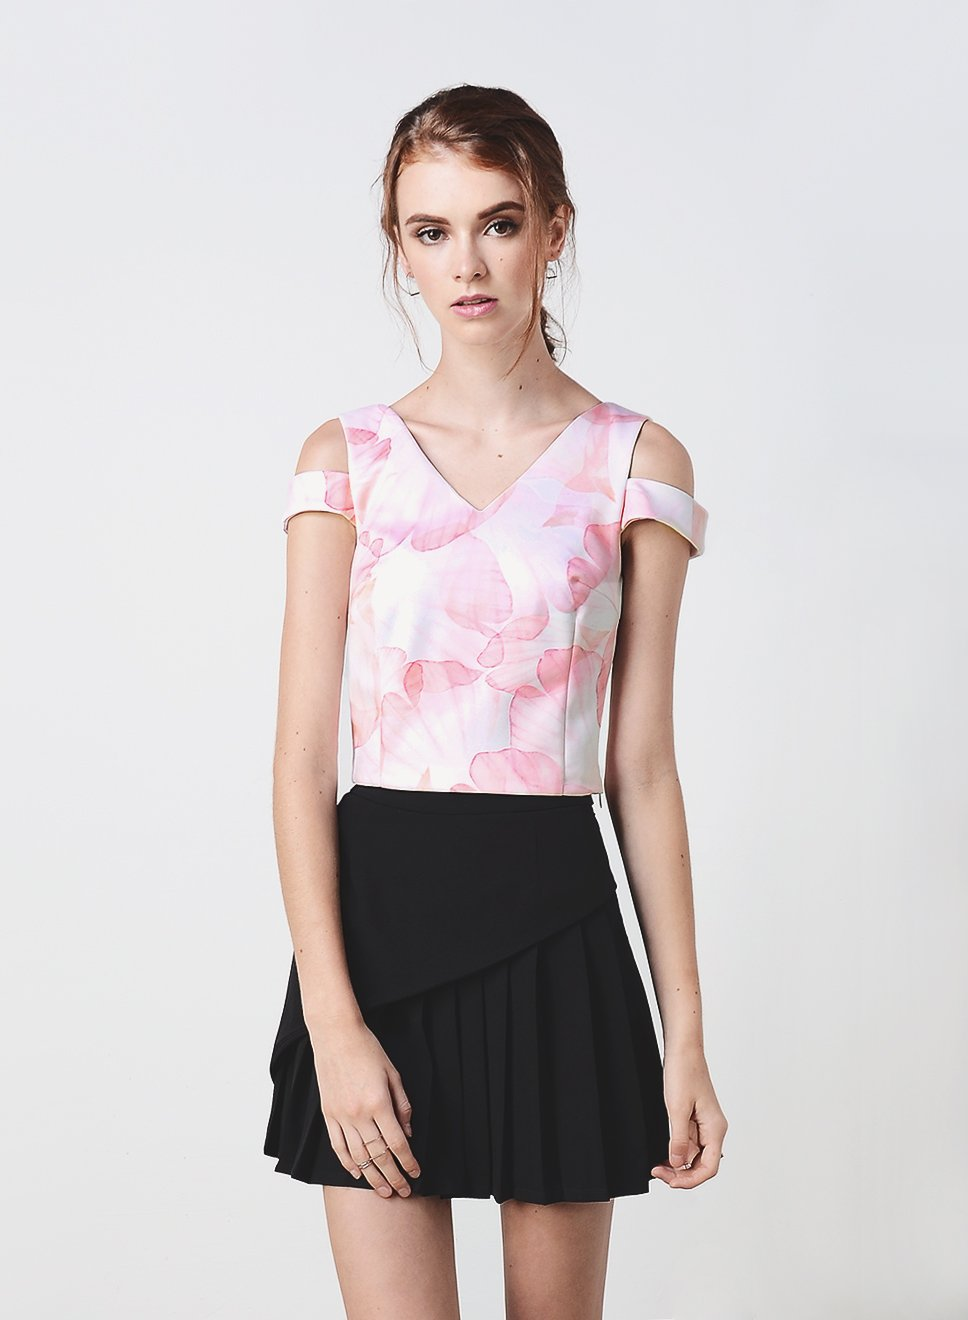 ROUX Double Strap Top (Blush Floral) - And Well Dressed